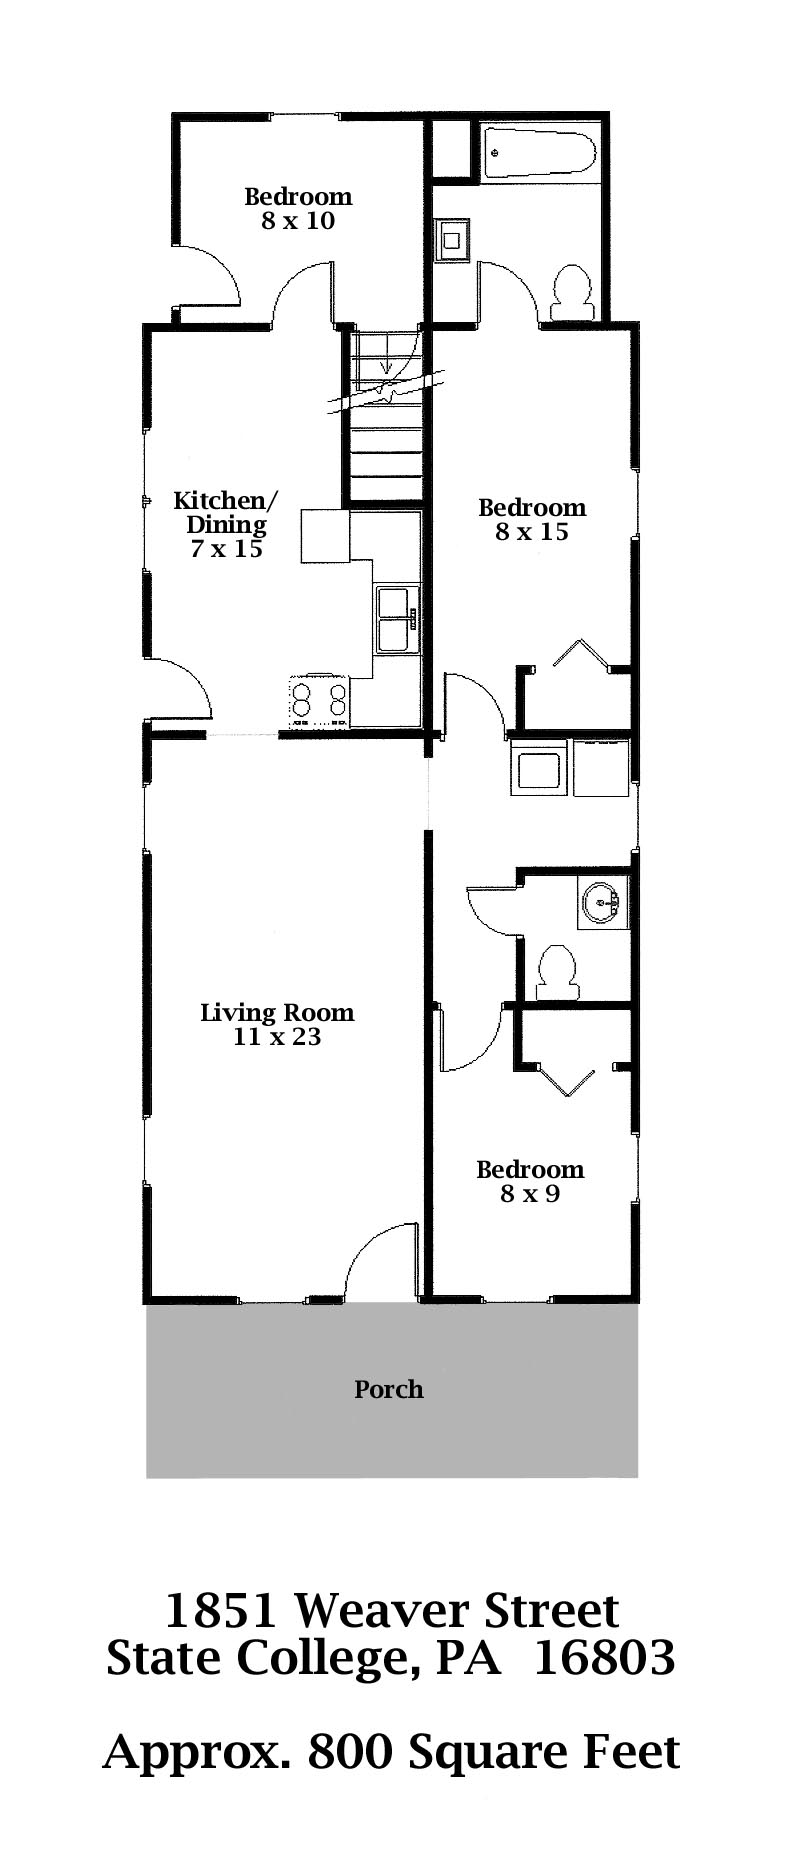 Floor plan of the 3-bedroom home for rent at 1851 Weaver Street in State College, PA